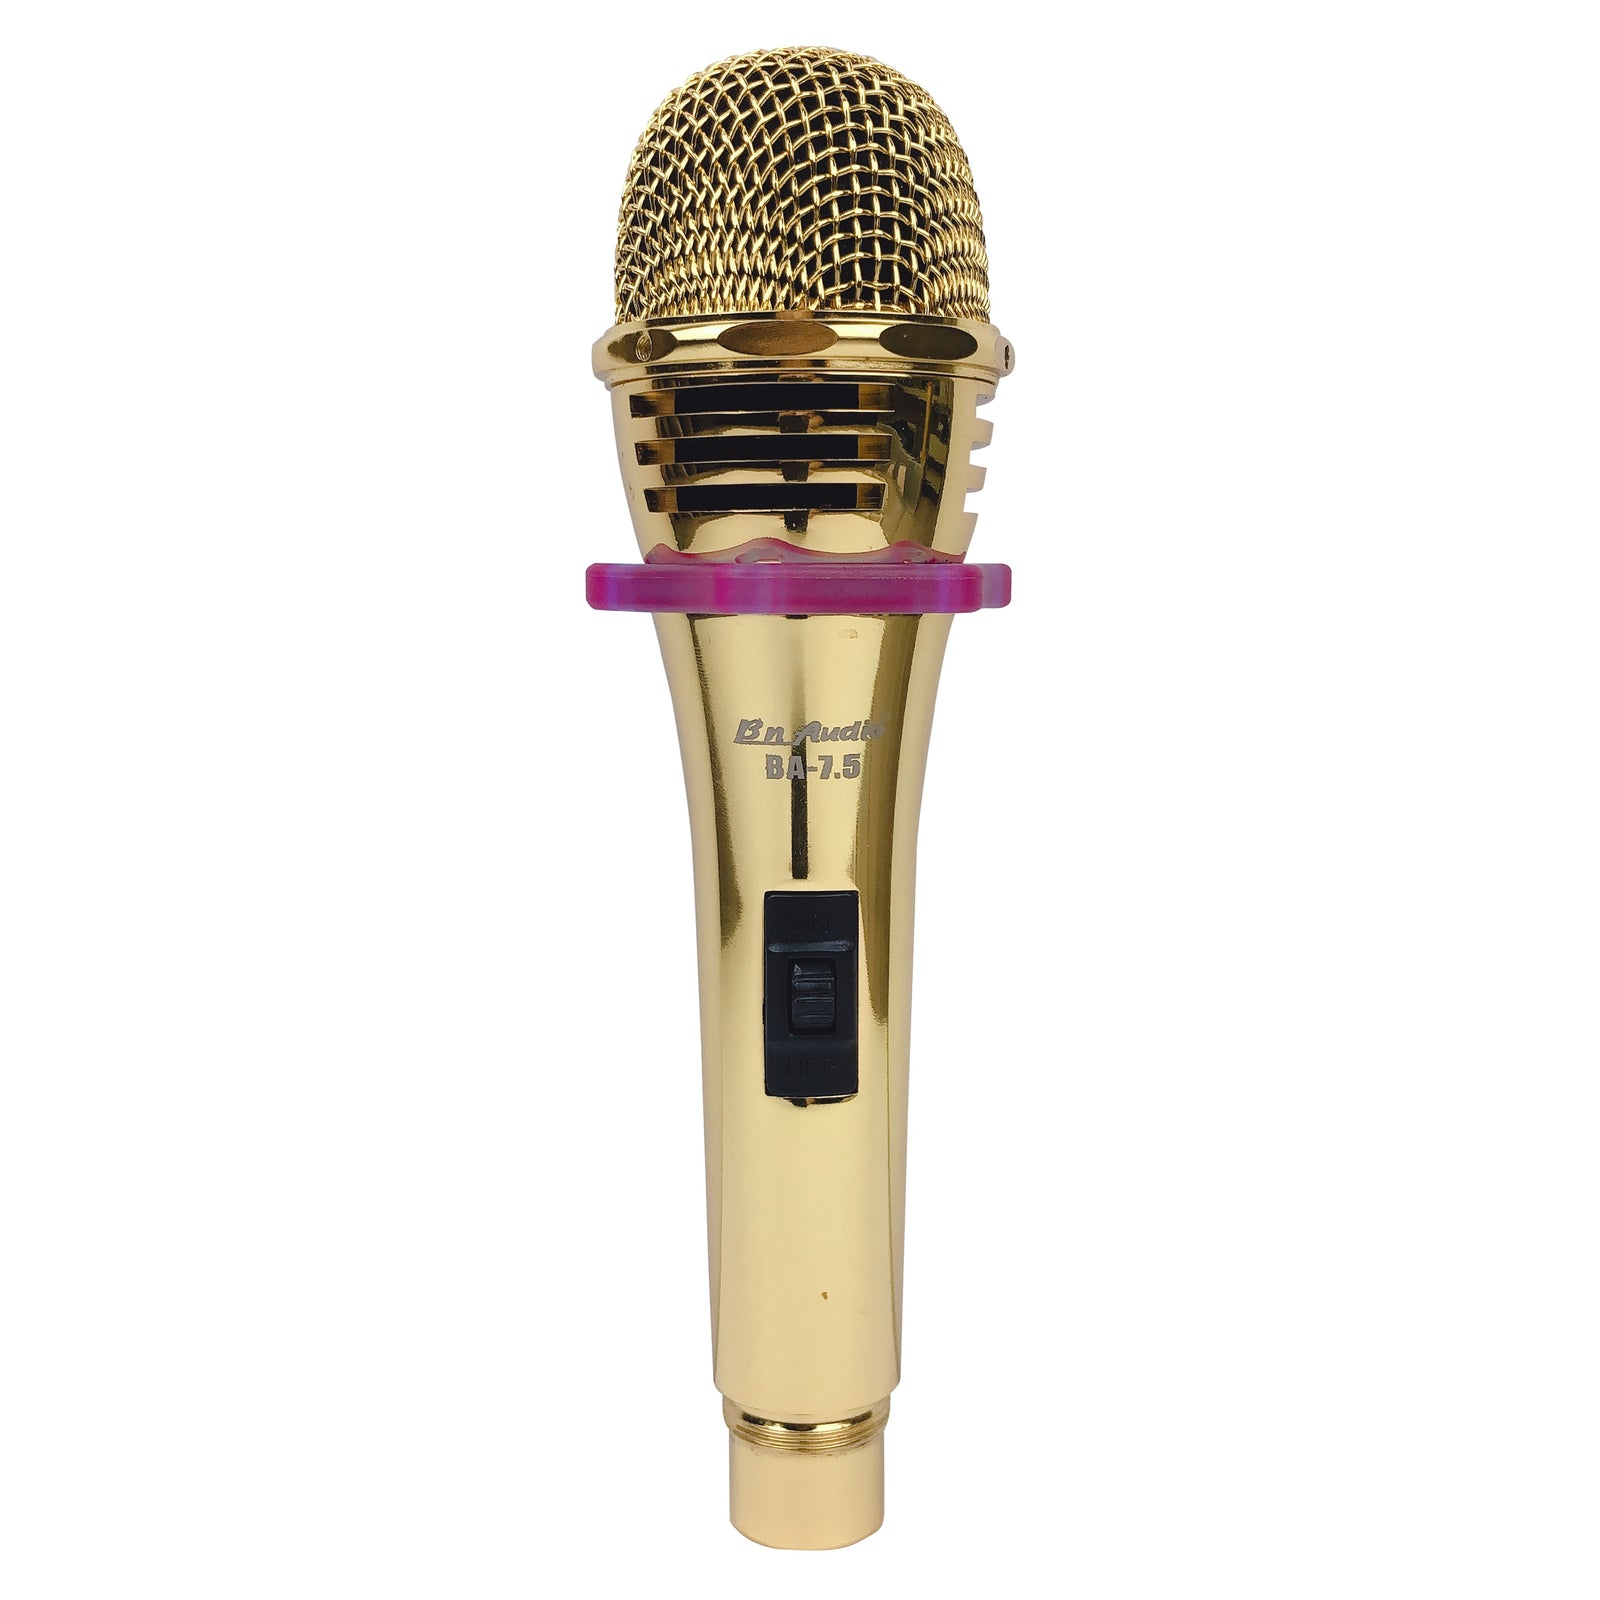 Bason BN-7.5 Wired KTV Microphone